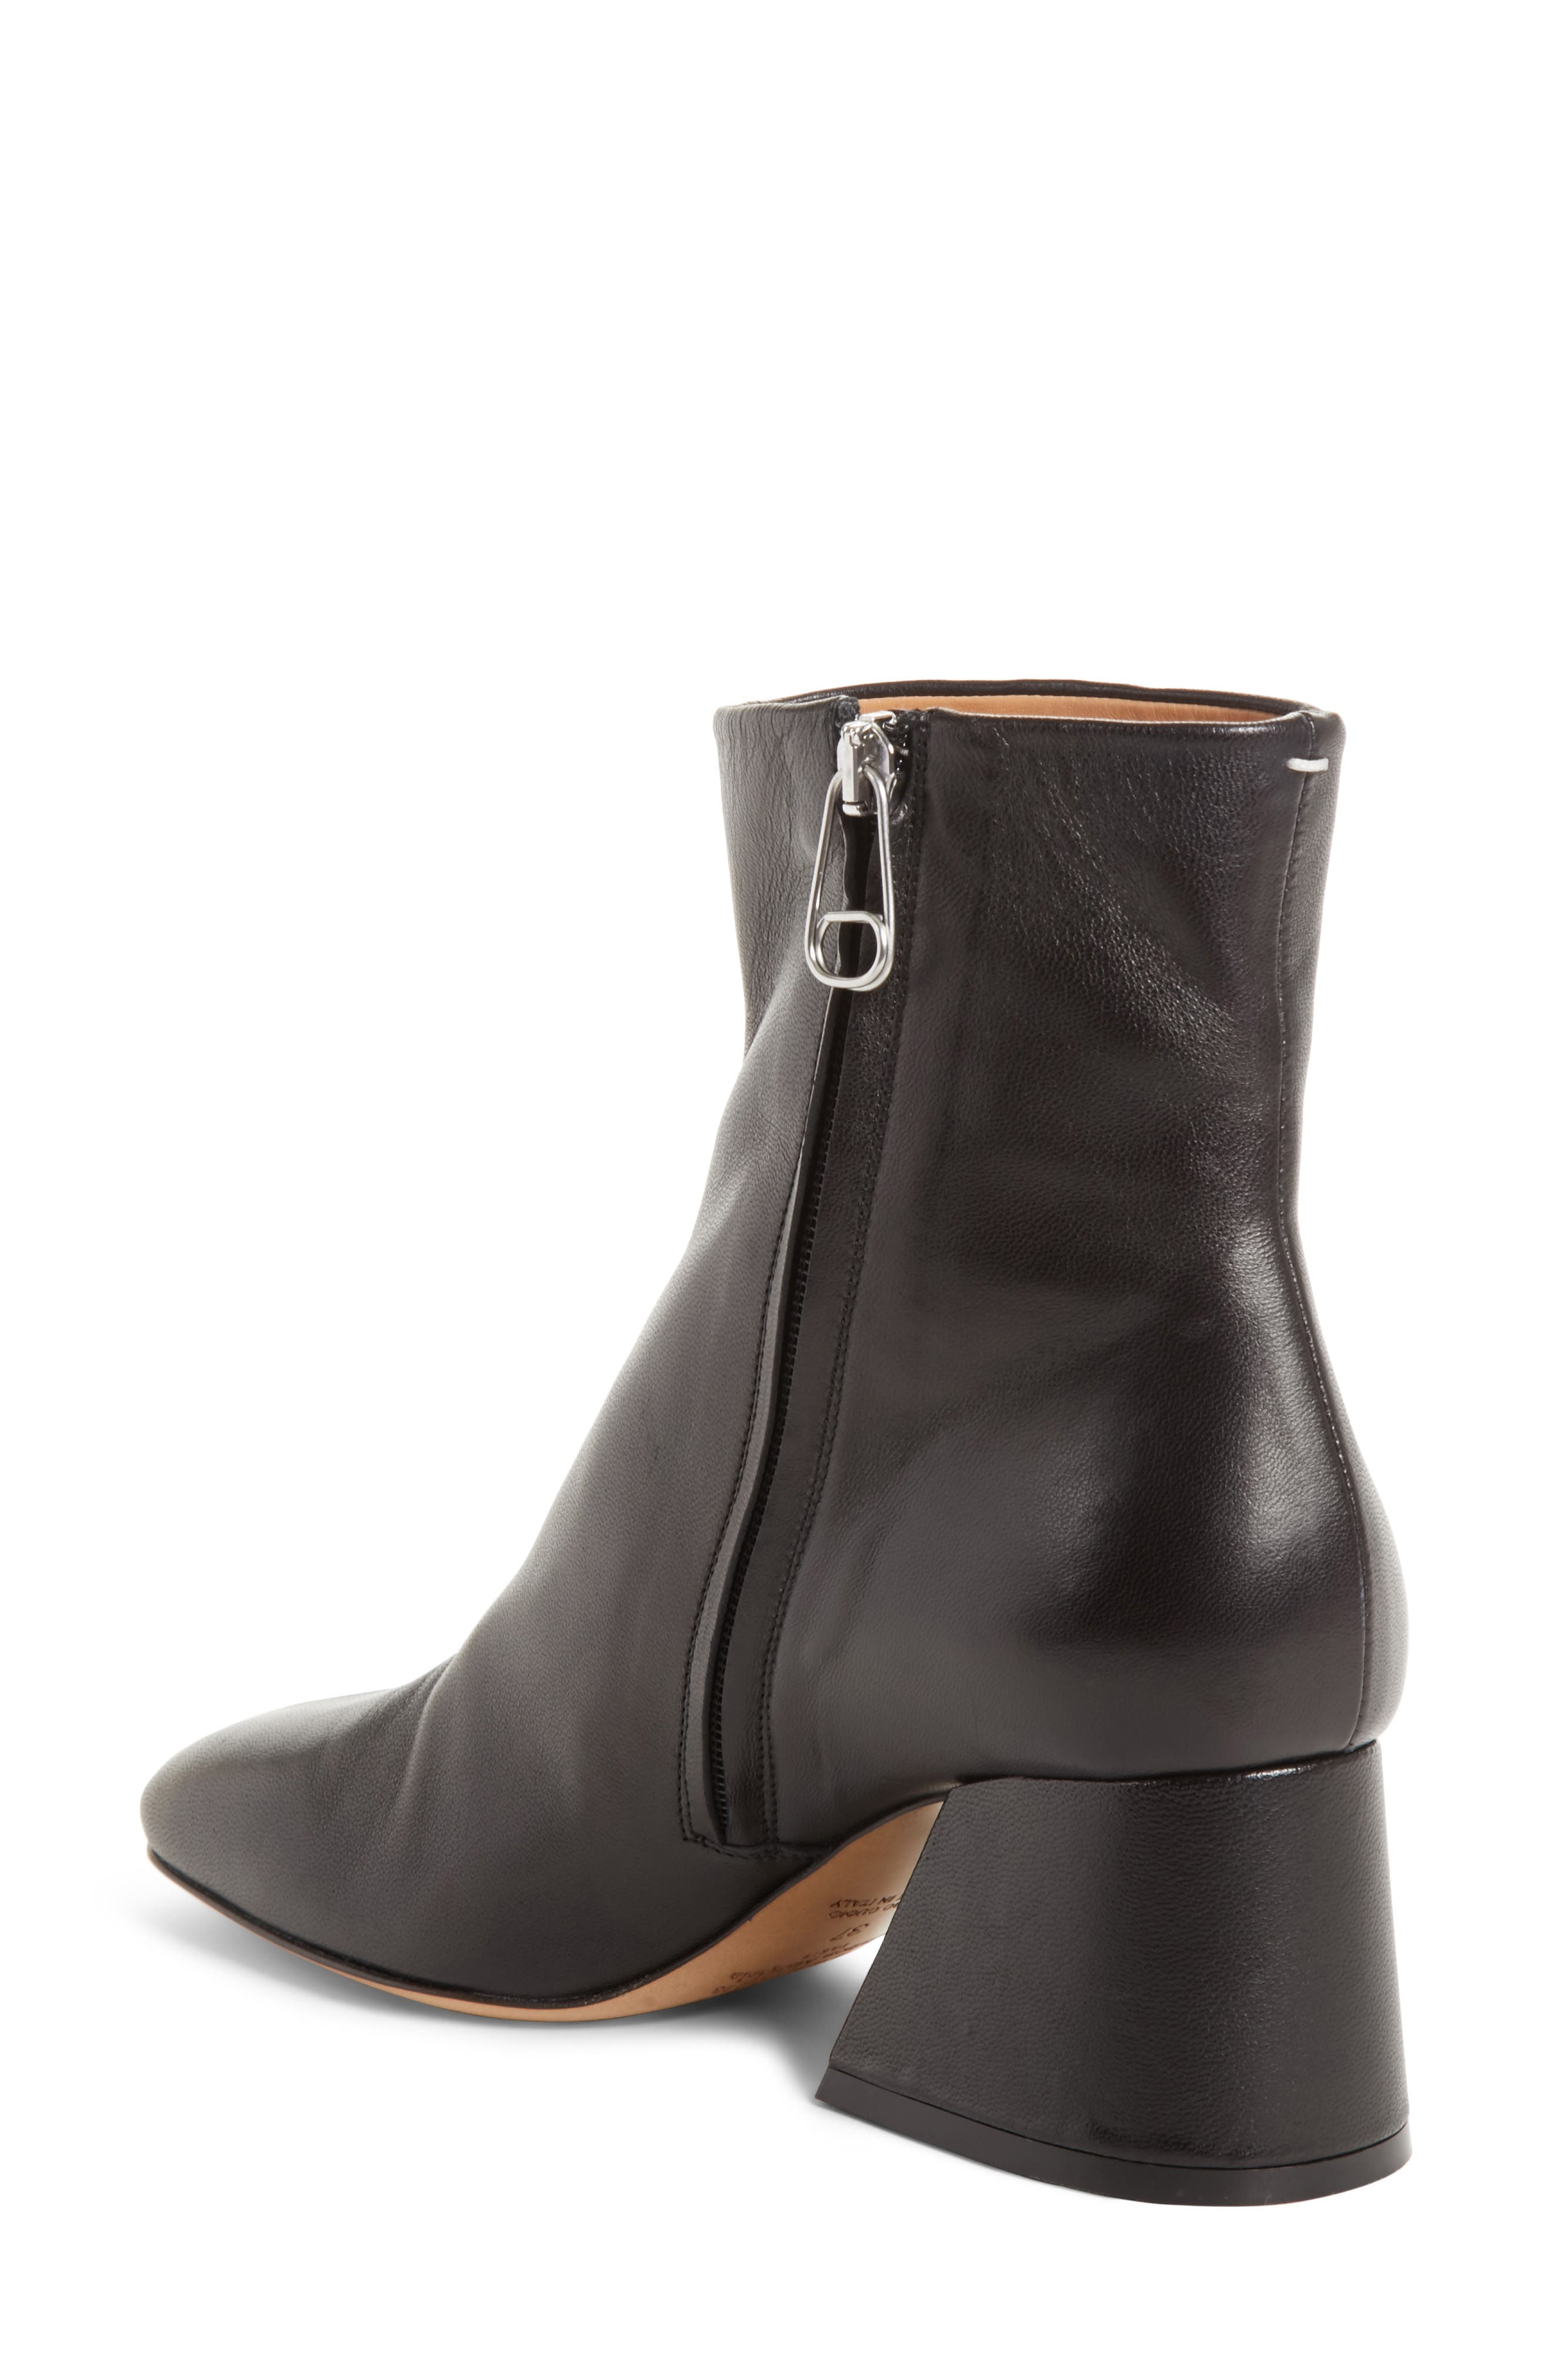 Flare Heel Ankle Boot,                             Alternate thumbnail 2, color,                             Black